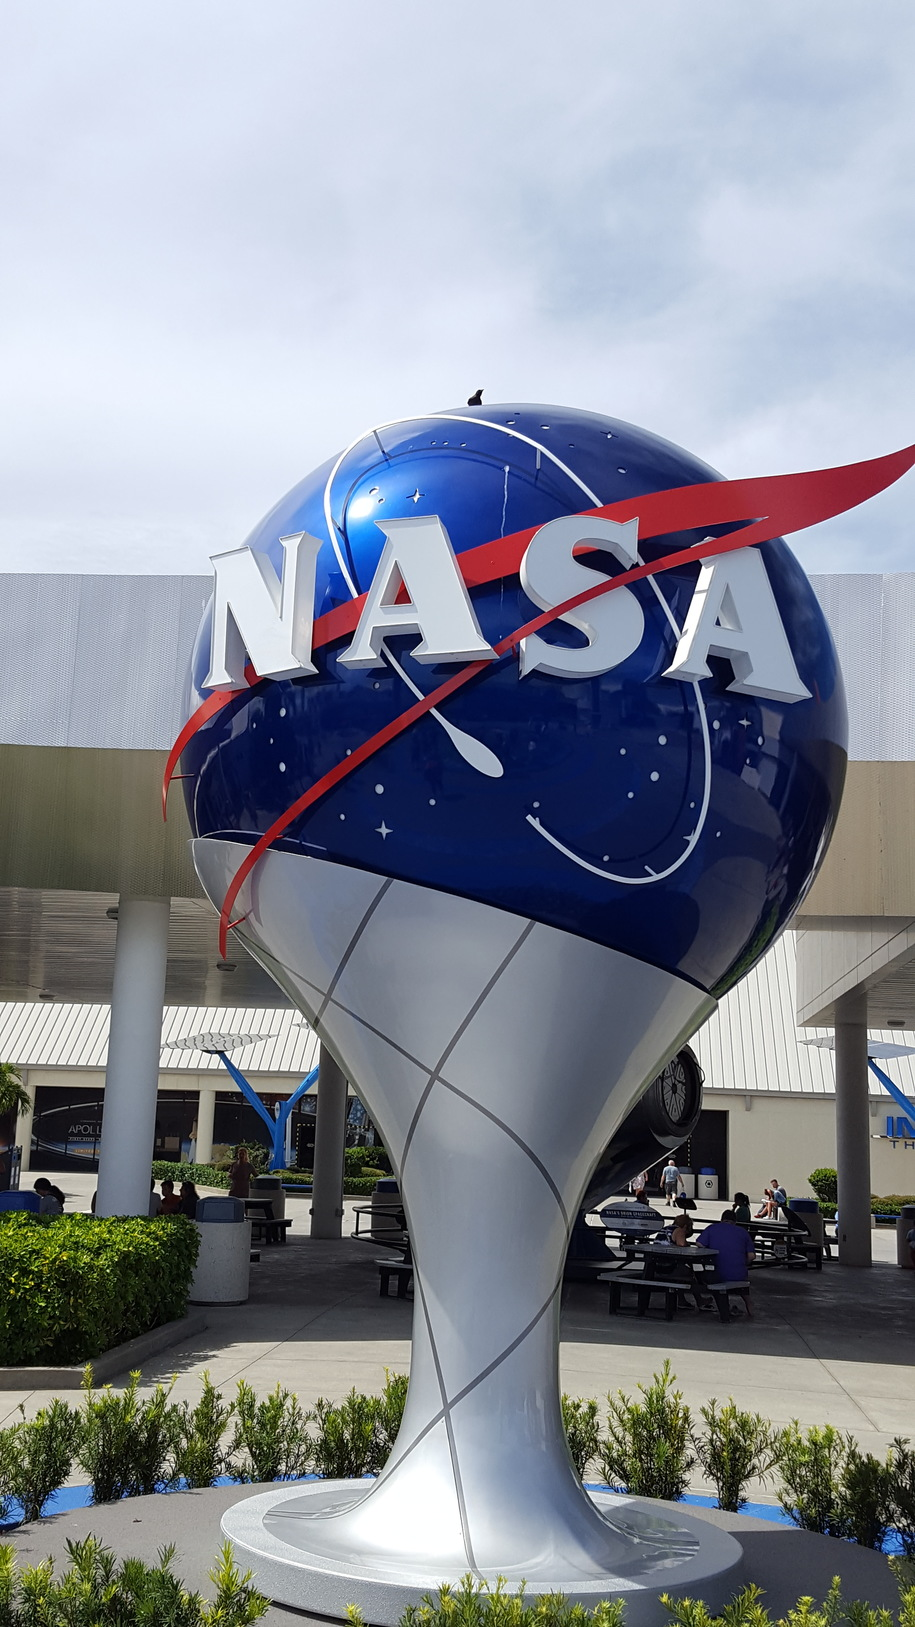 Photo Diary: Kennedy Space Center-- We Used to do Great Things